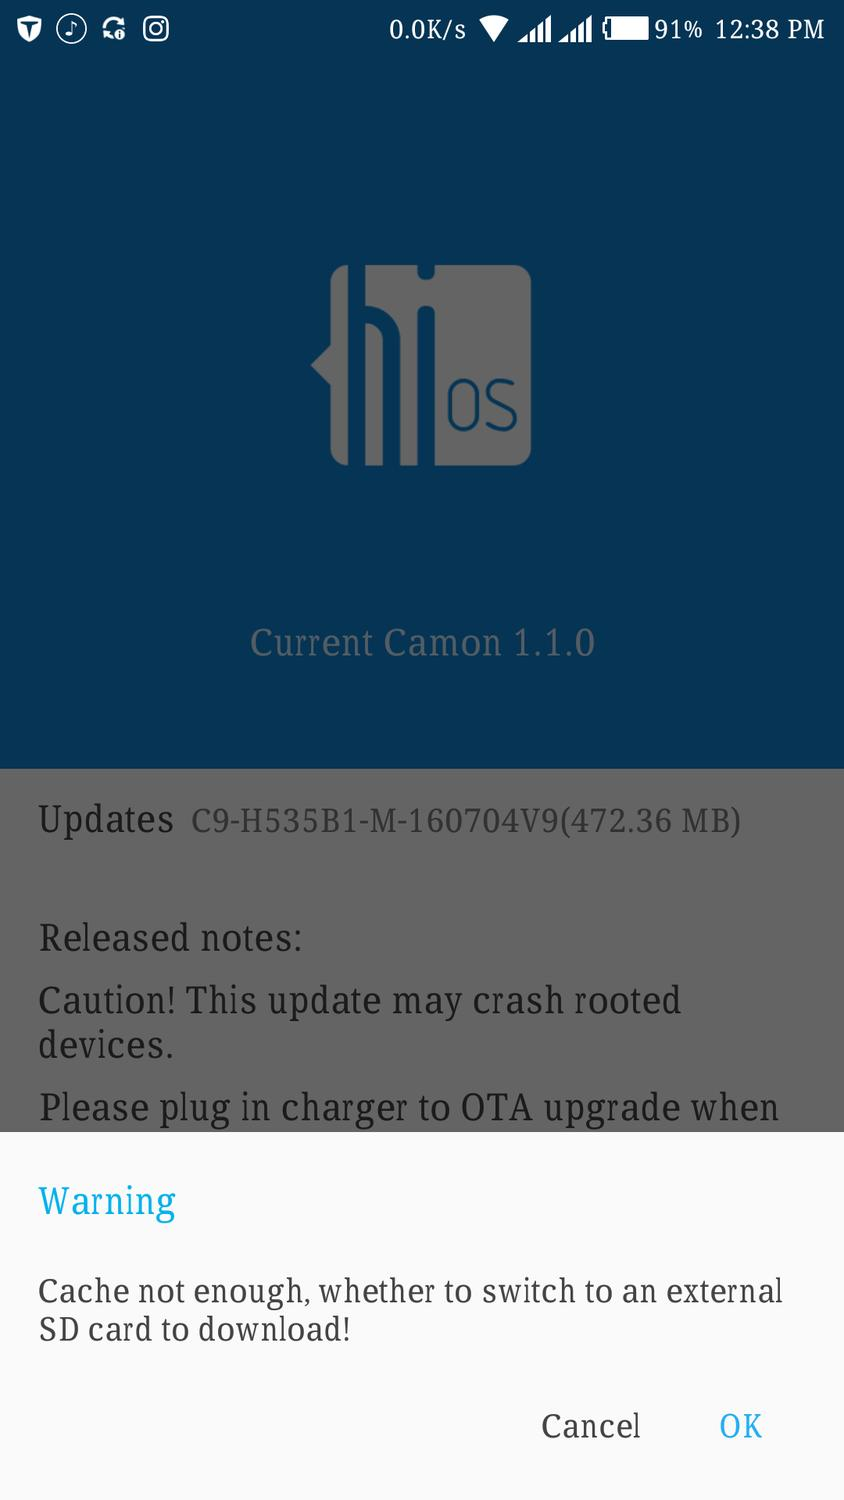 Tecno camon C9 update is available but can't download